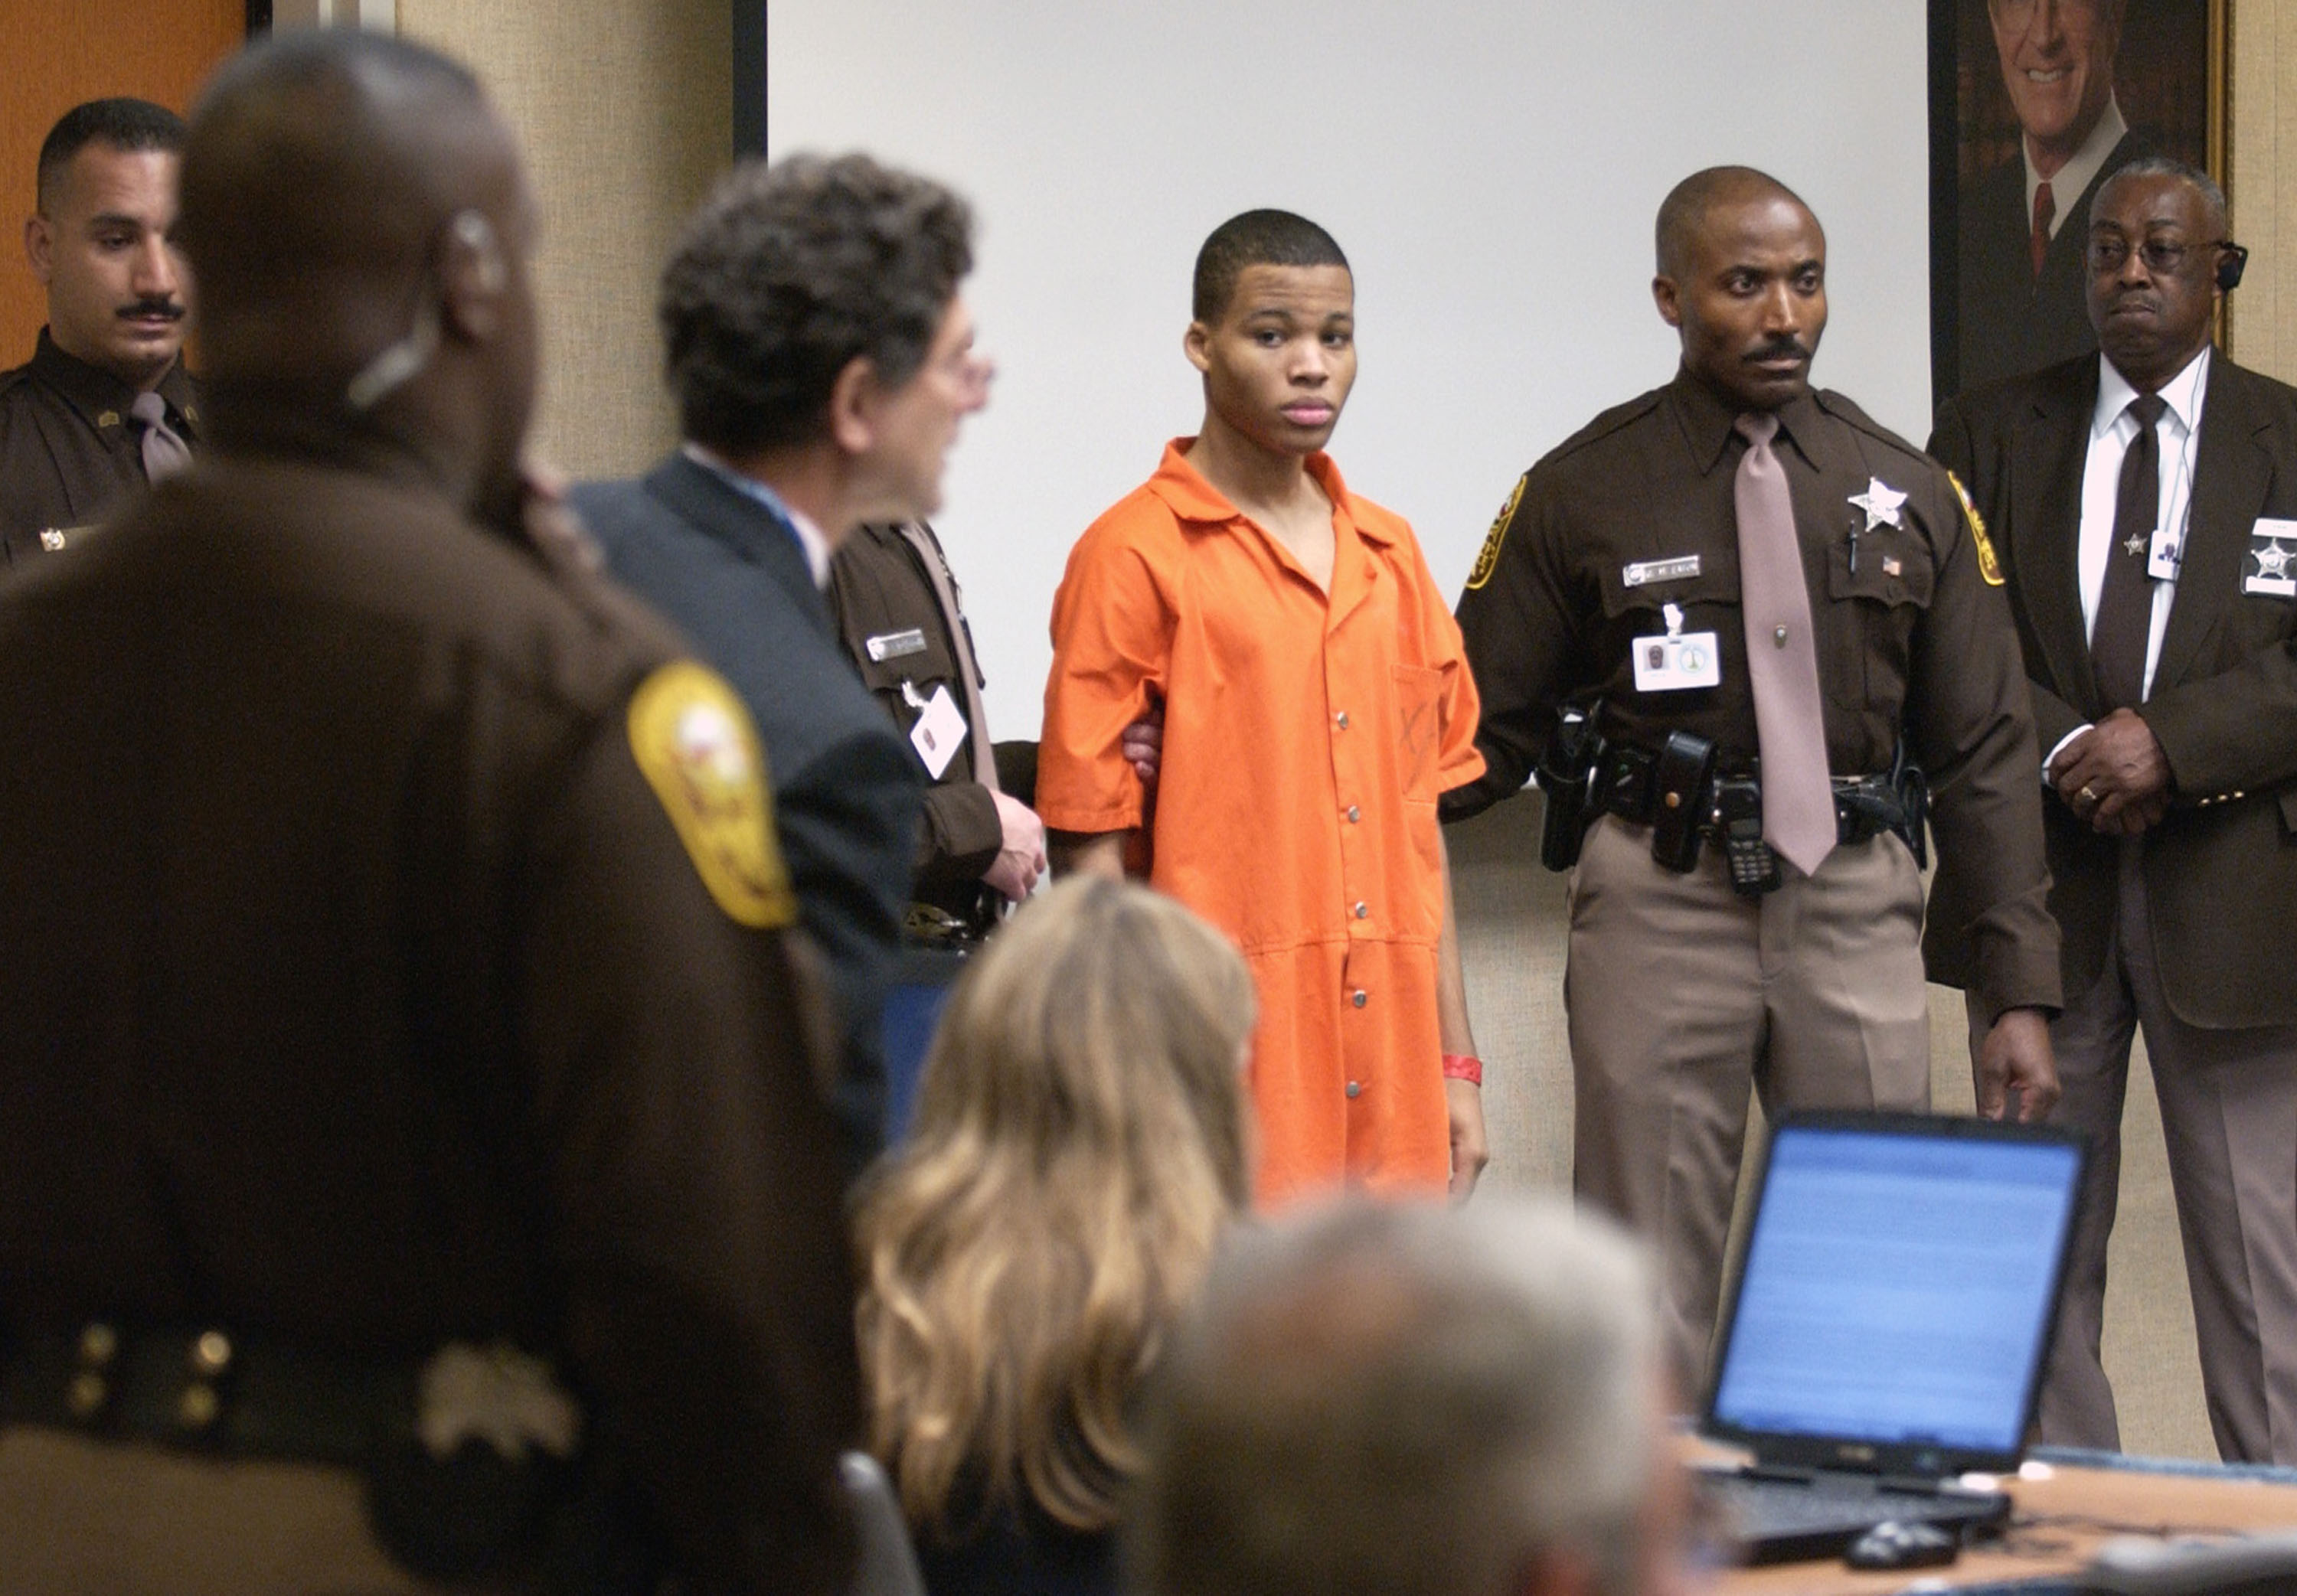 Sniper suspect Lee Boyd Malvo (C) is escorted by deputies as he is brought into court to be identified by a witness during the murder trial in courtroom 10 at the Virginia Beach Circuit Court October 22, 2003 in Virginia Beach, Virginia. Muhammad has decided not to represent himself in court and to turn his defense back to his attorneys.